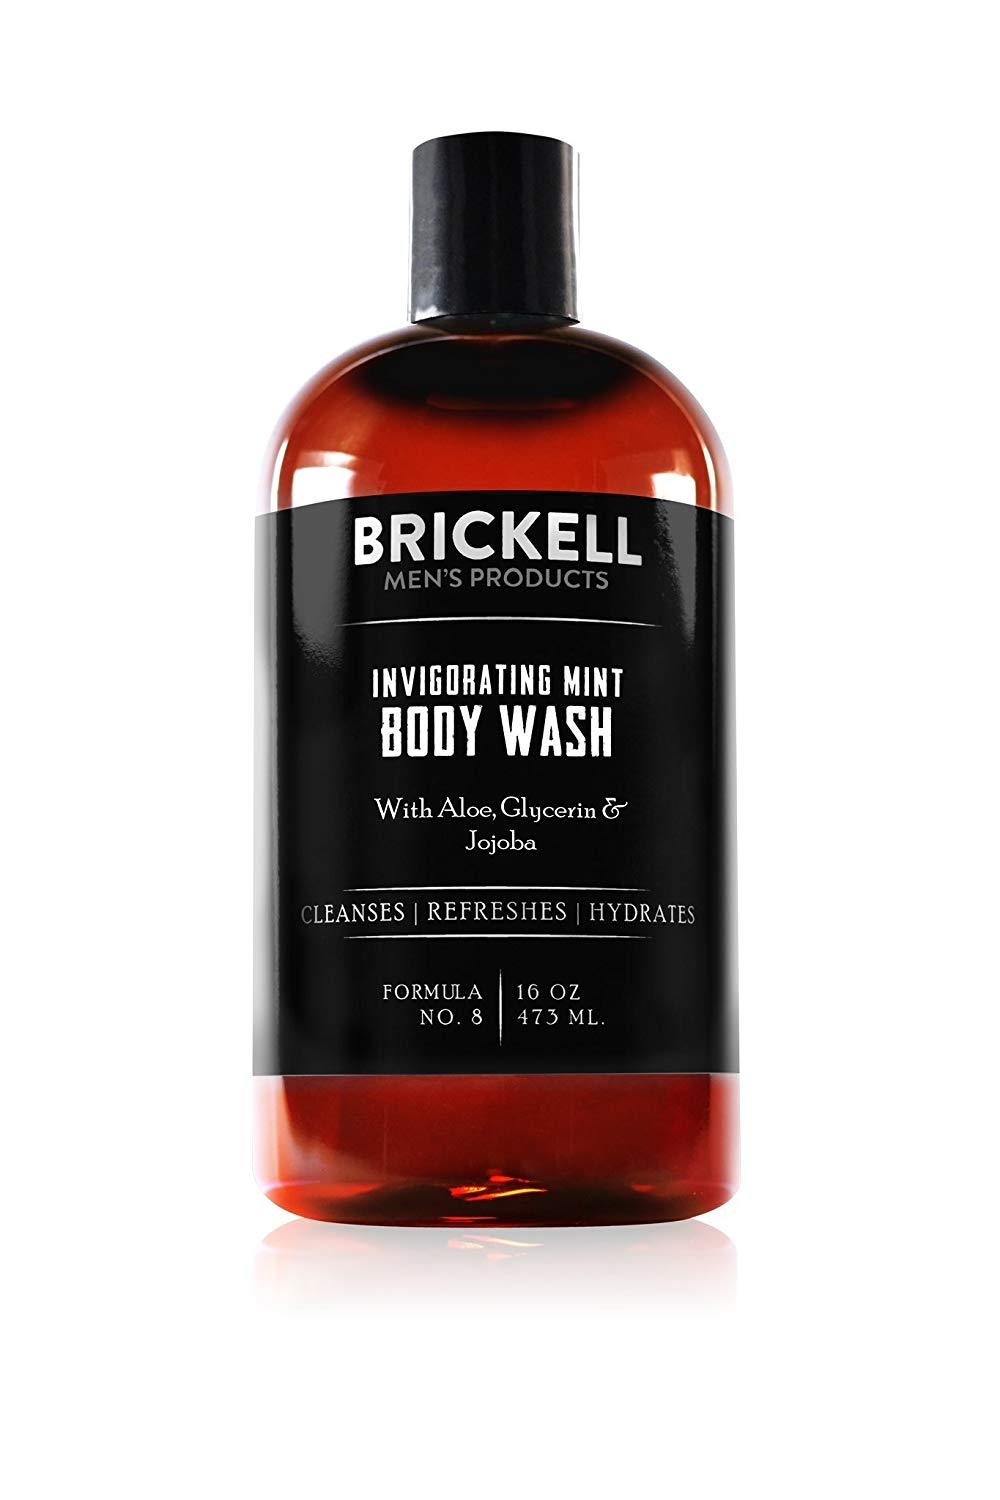 Brickell Men's Invigorating Mint Body Wash for Men